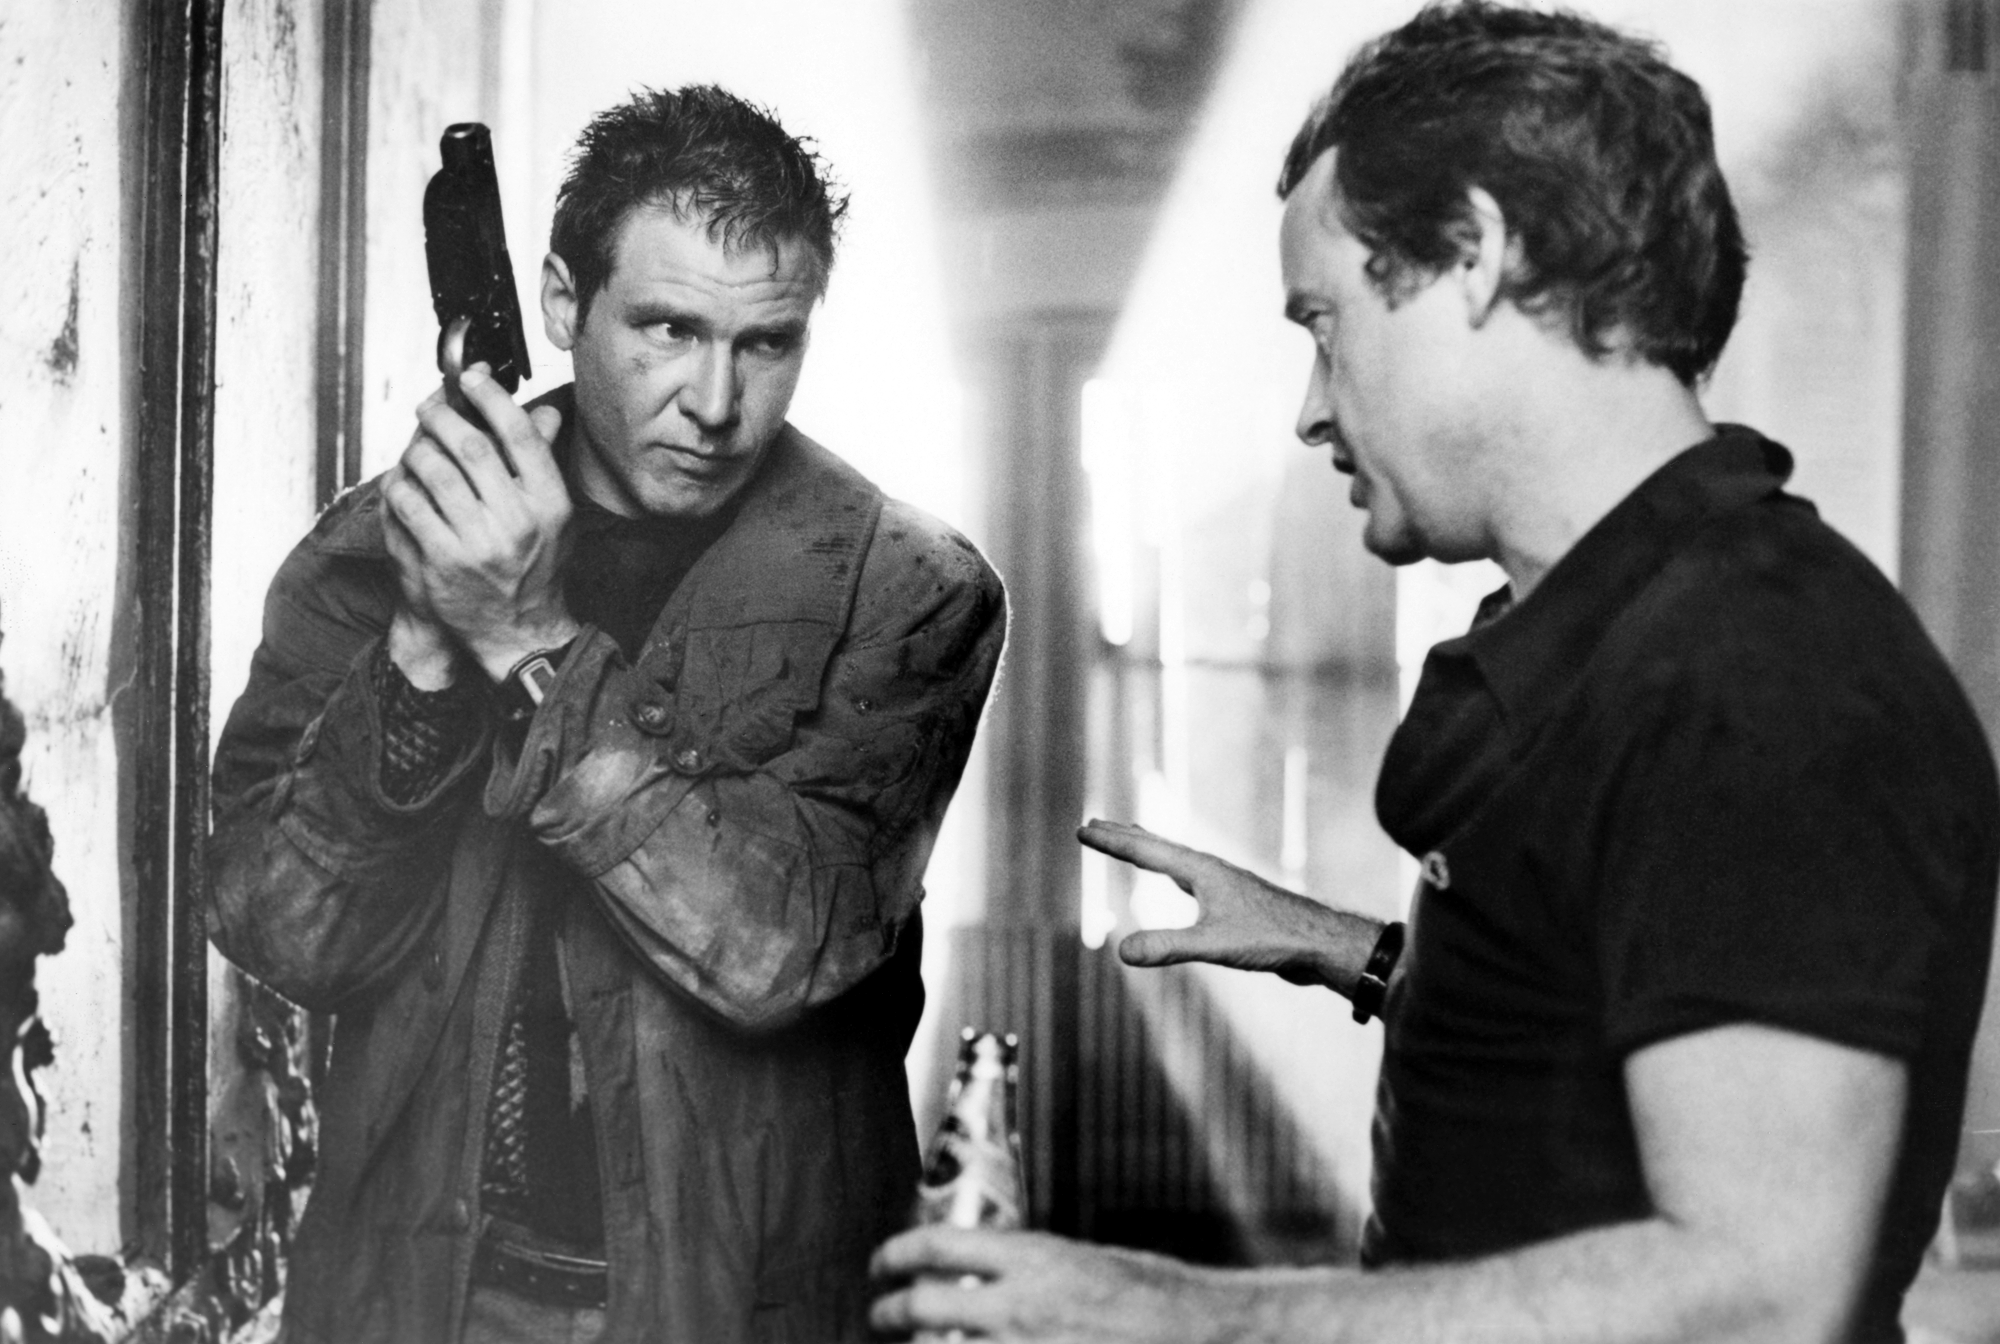 Ridley Scott's 'Blade Runner': A Game-Changing Science-Fiction Classic